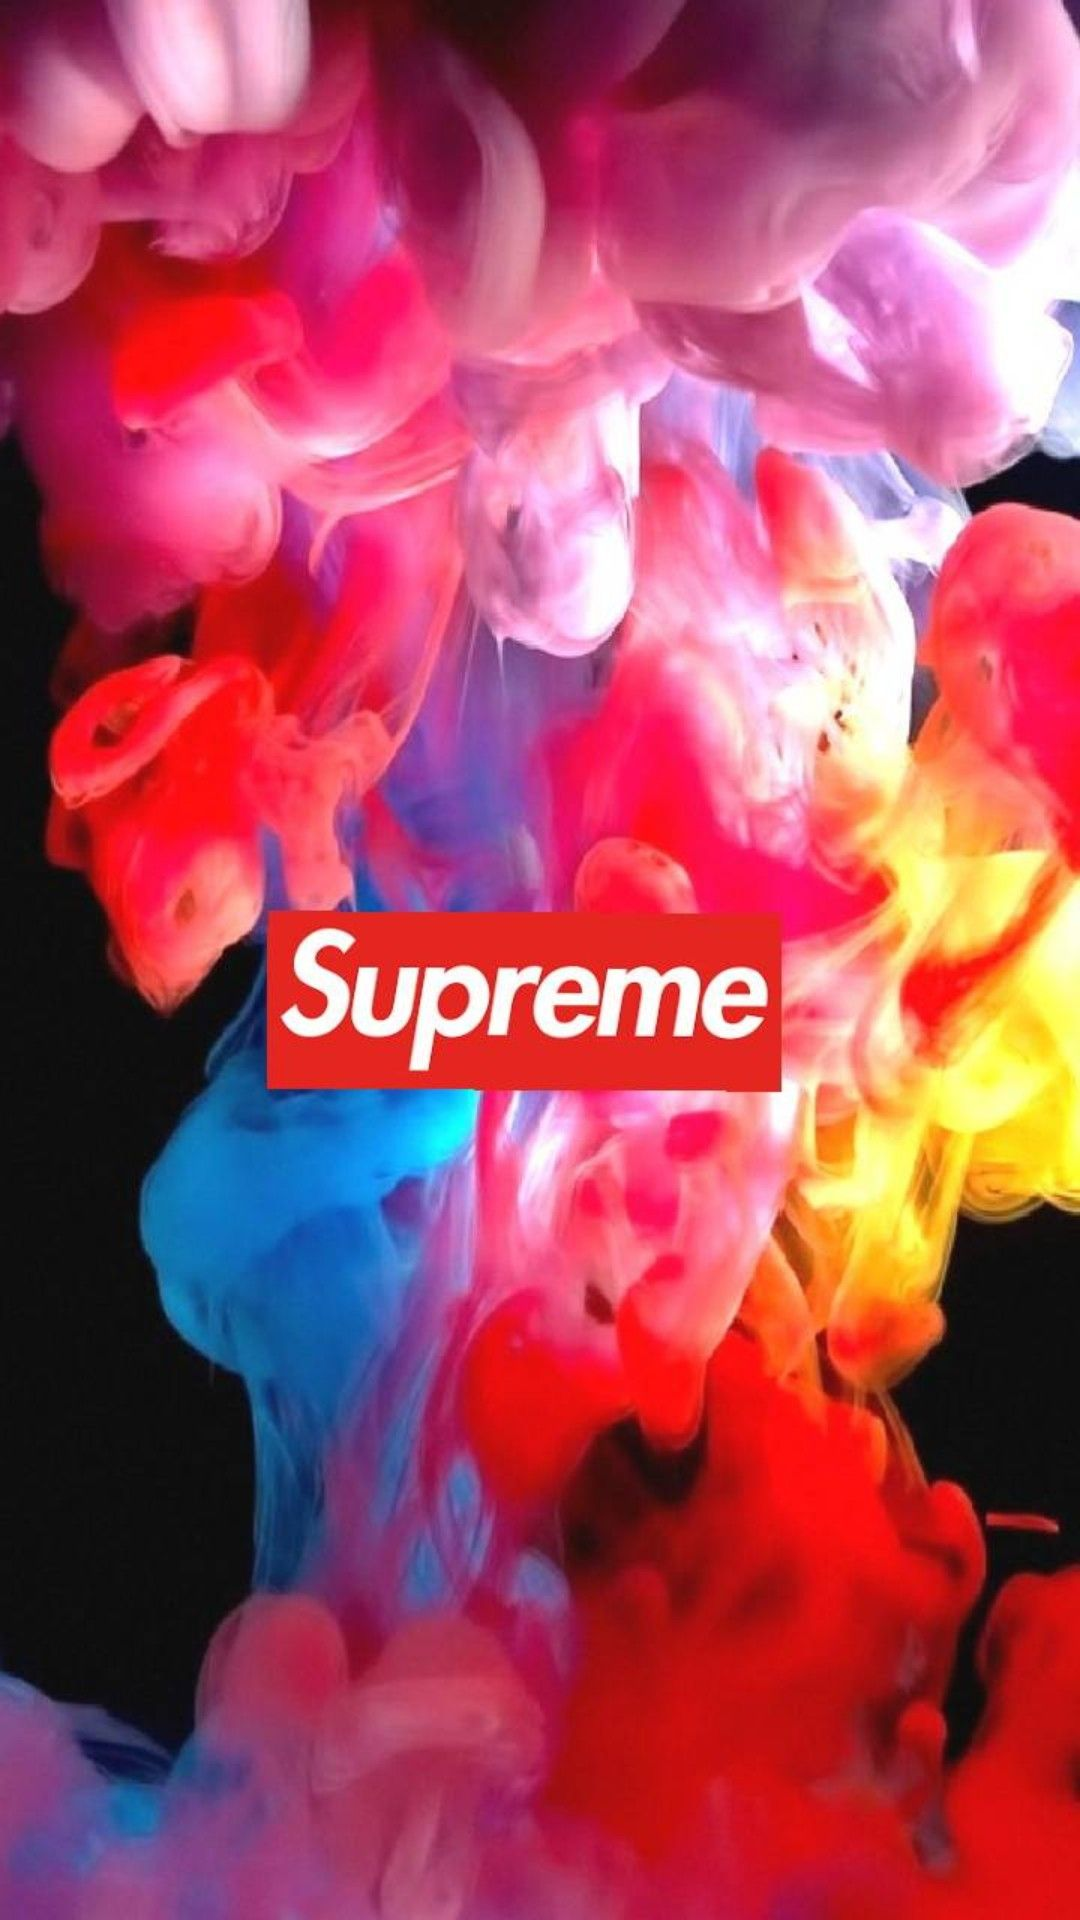 Pin By Q Wavy On Appel Supreme Iphone Wallpaper Supreme Wallpaper Supreme Background